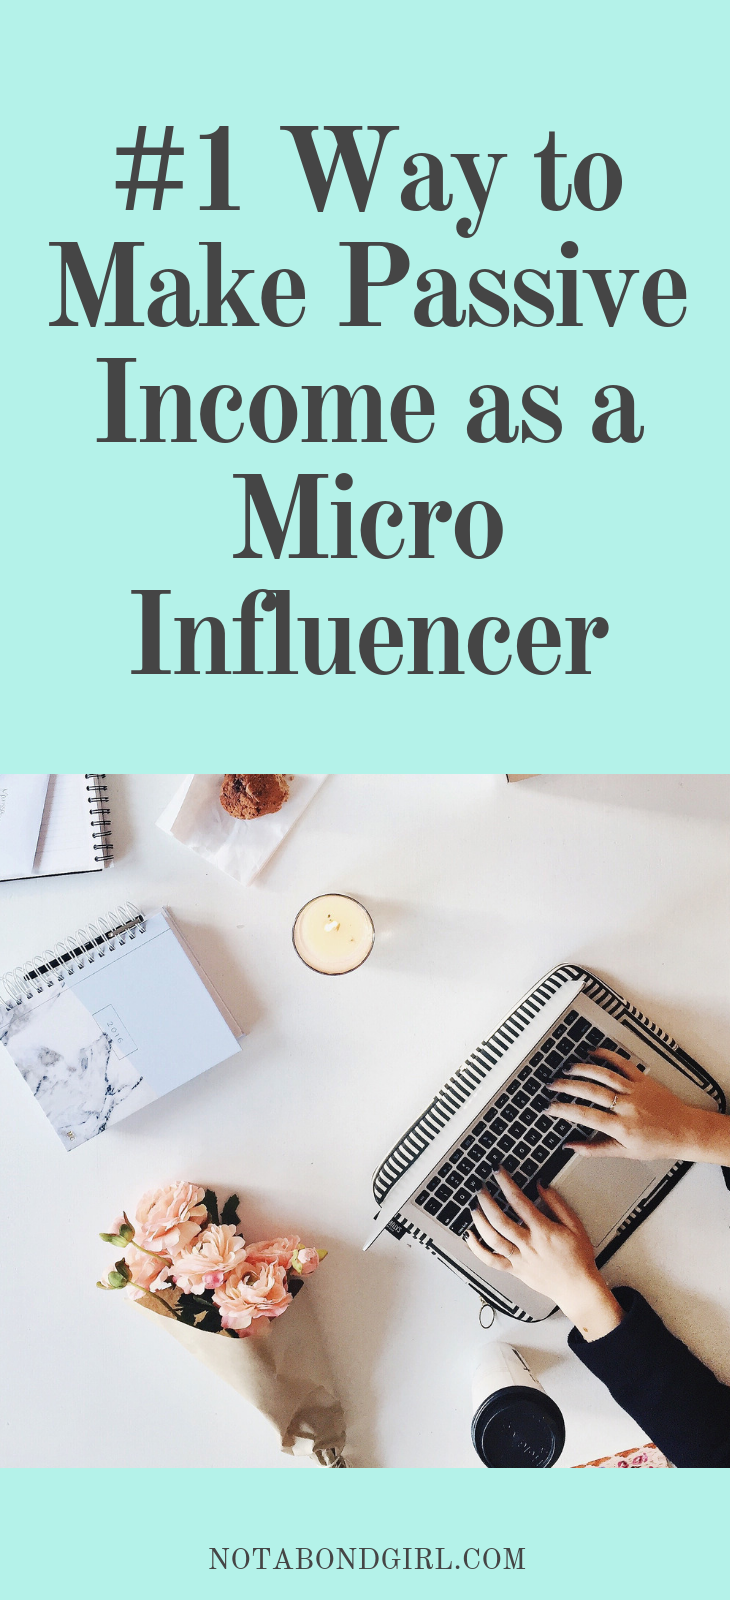 #1 Way to Build Passive Income as a Micro-Influencer